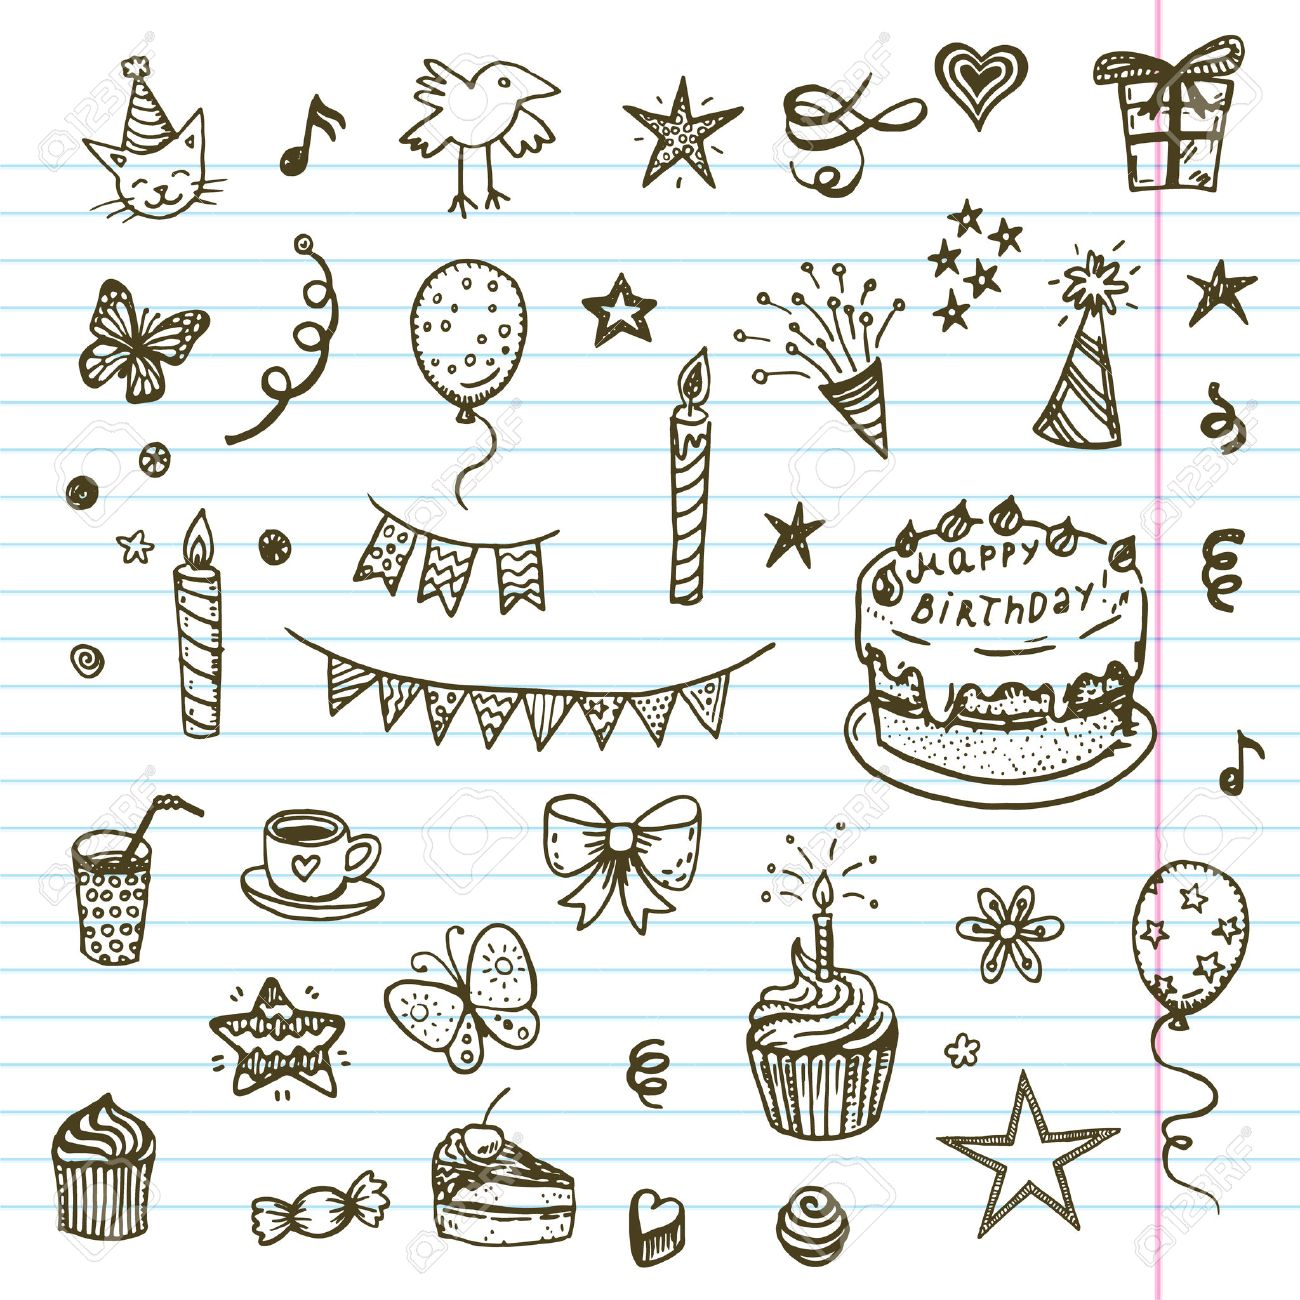 Birhday Elements Hand Drawn Set With Birthday Cake Baloons